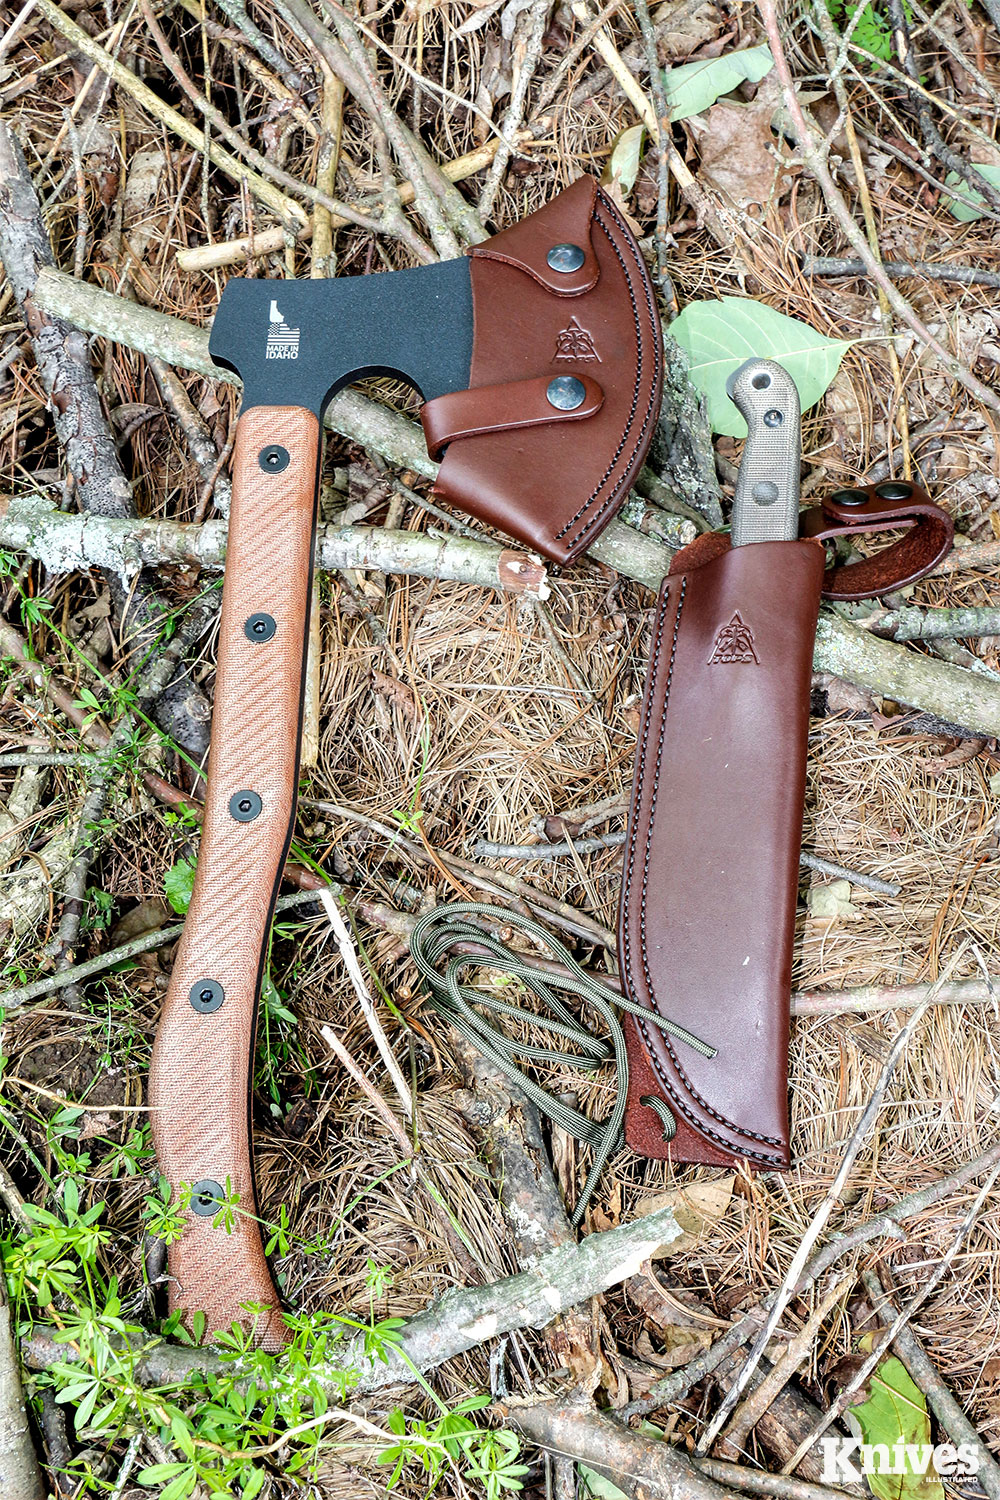 Both tools come with high-quality leather sheaths. The one for the Brush Wolf has a belt loop on a dangler.